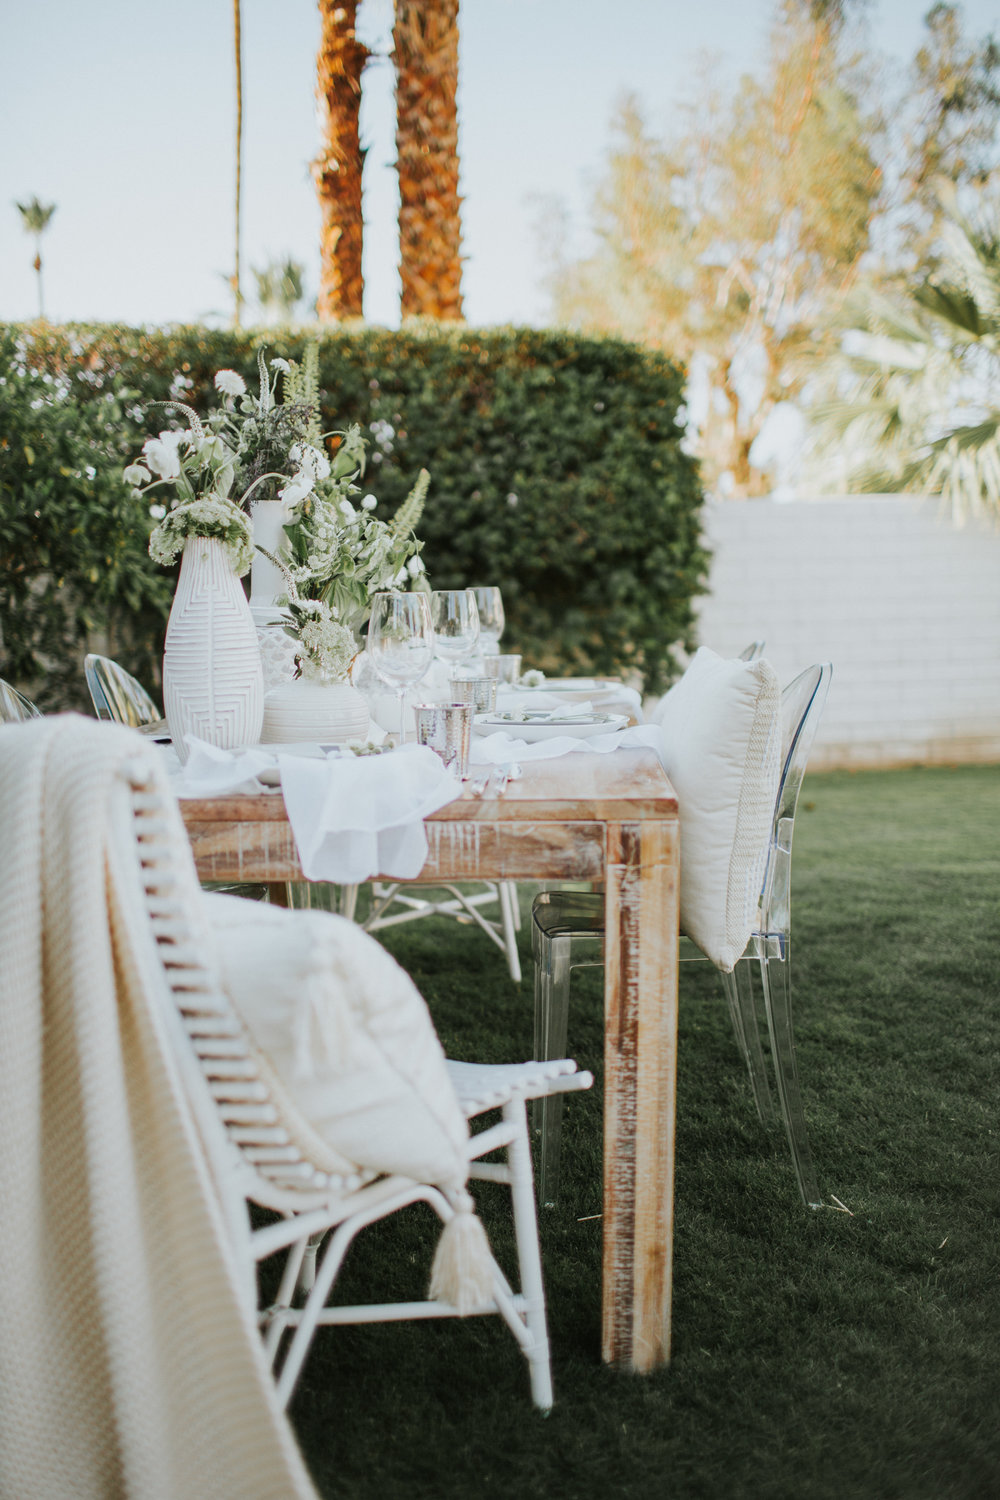 Desert party decor | A Fabulous Fete